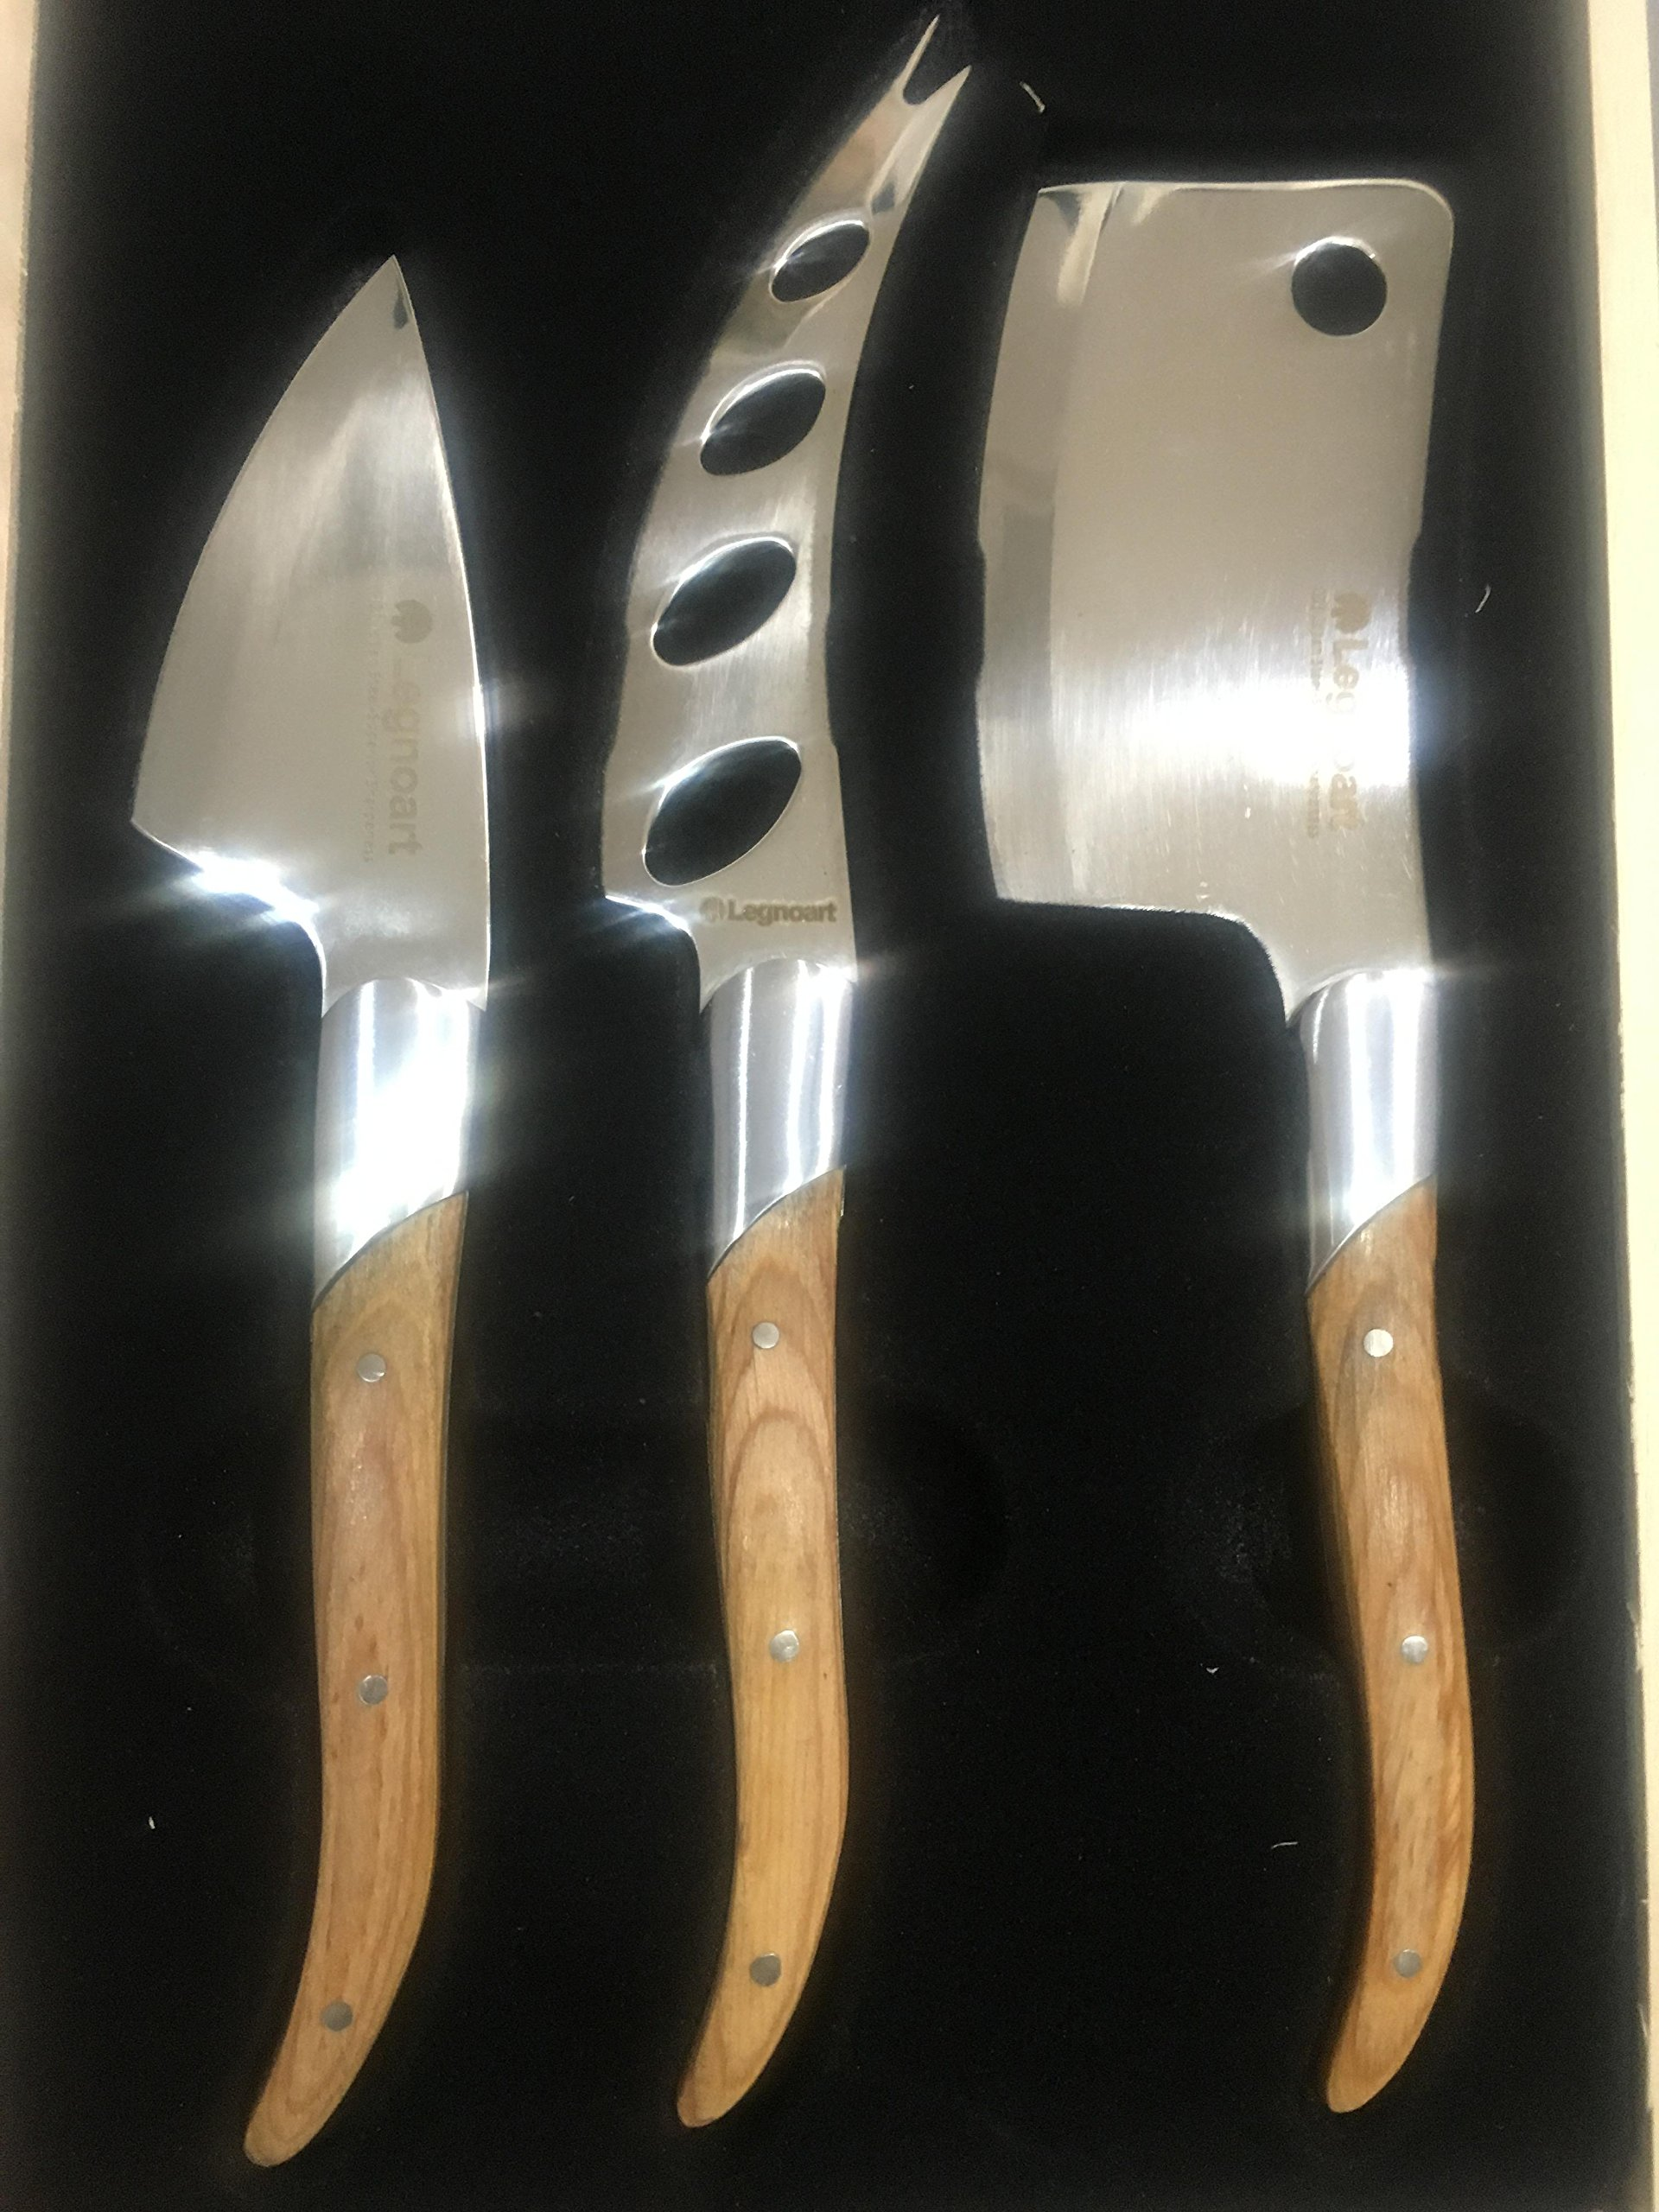 Legnoart LATTE VIVO Cheese Enthusiast Set, Stainless Steel with Wood Handles, Designed by Enrico Albertini